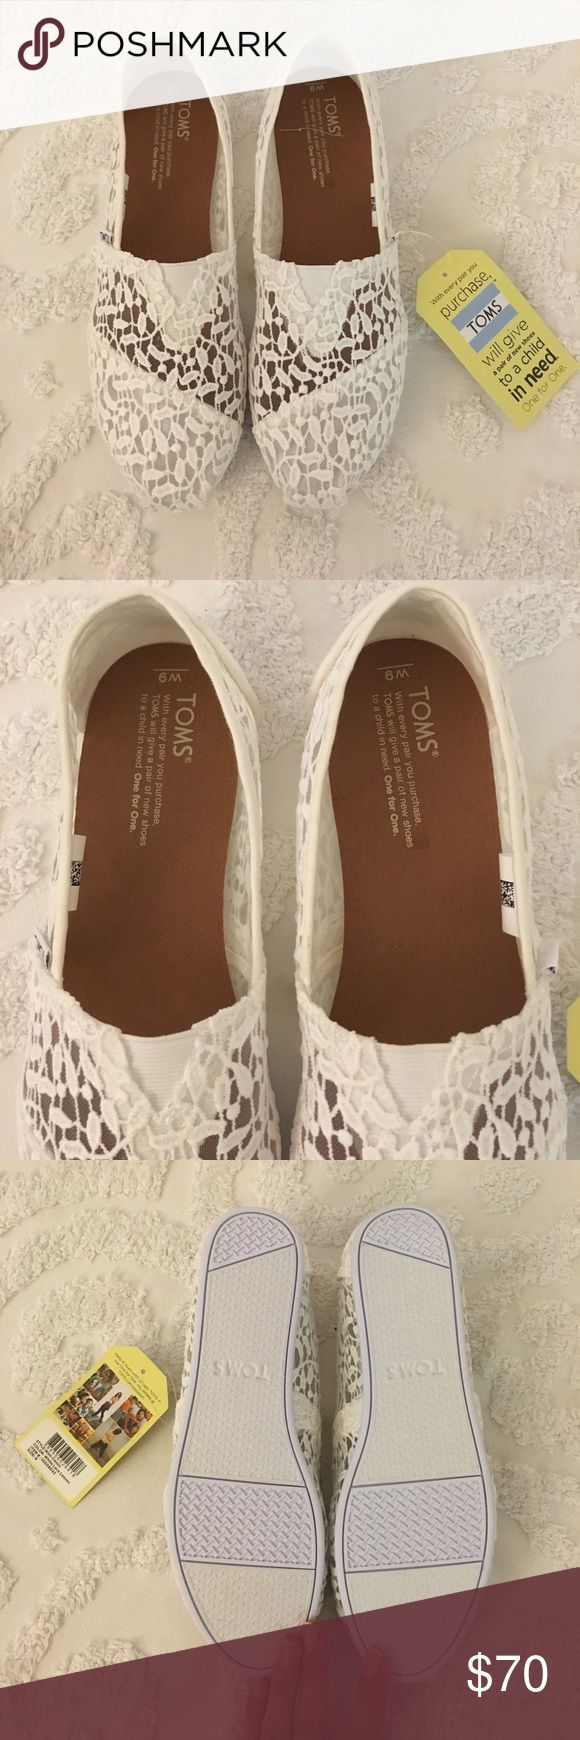 NWT TOMS White lace Tom's! Brand new - never worn. Super cute for wedding day! 💍👰🏼 TOMS Shoes Flats & Loafers